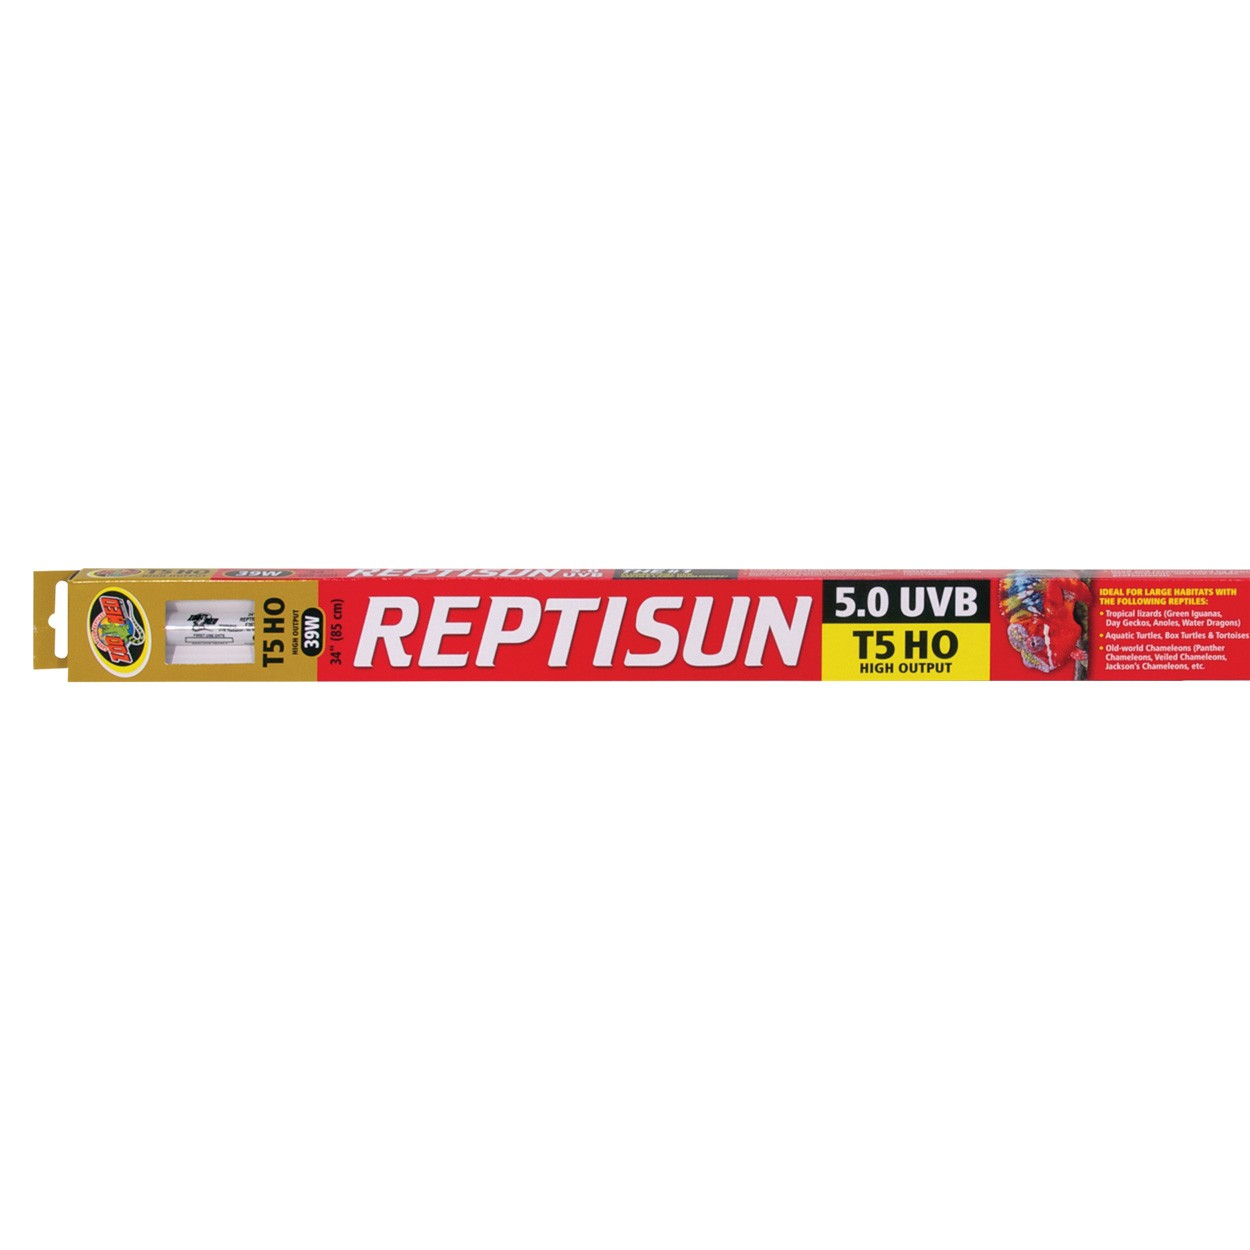 ReptiSun 5.0 T5 High Output UVB Fluorescent Lamp 39W 85cm